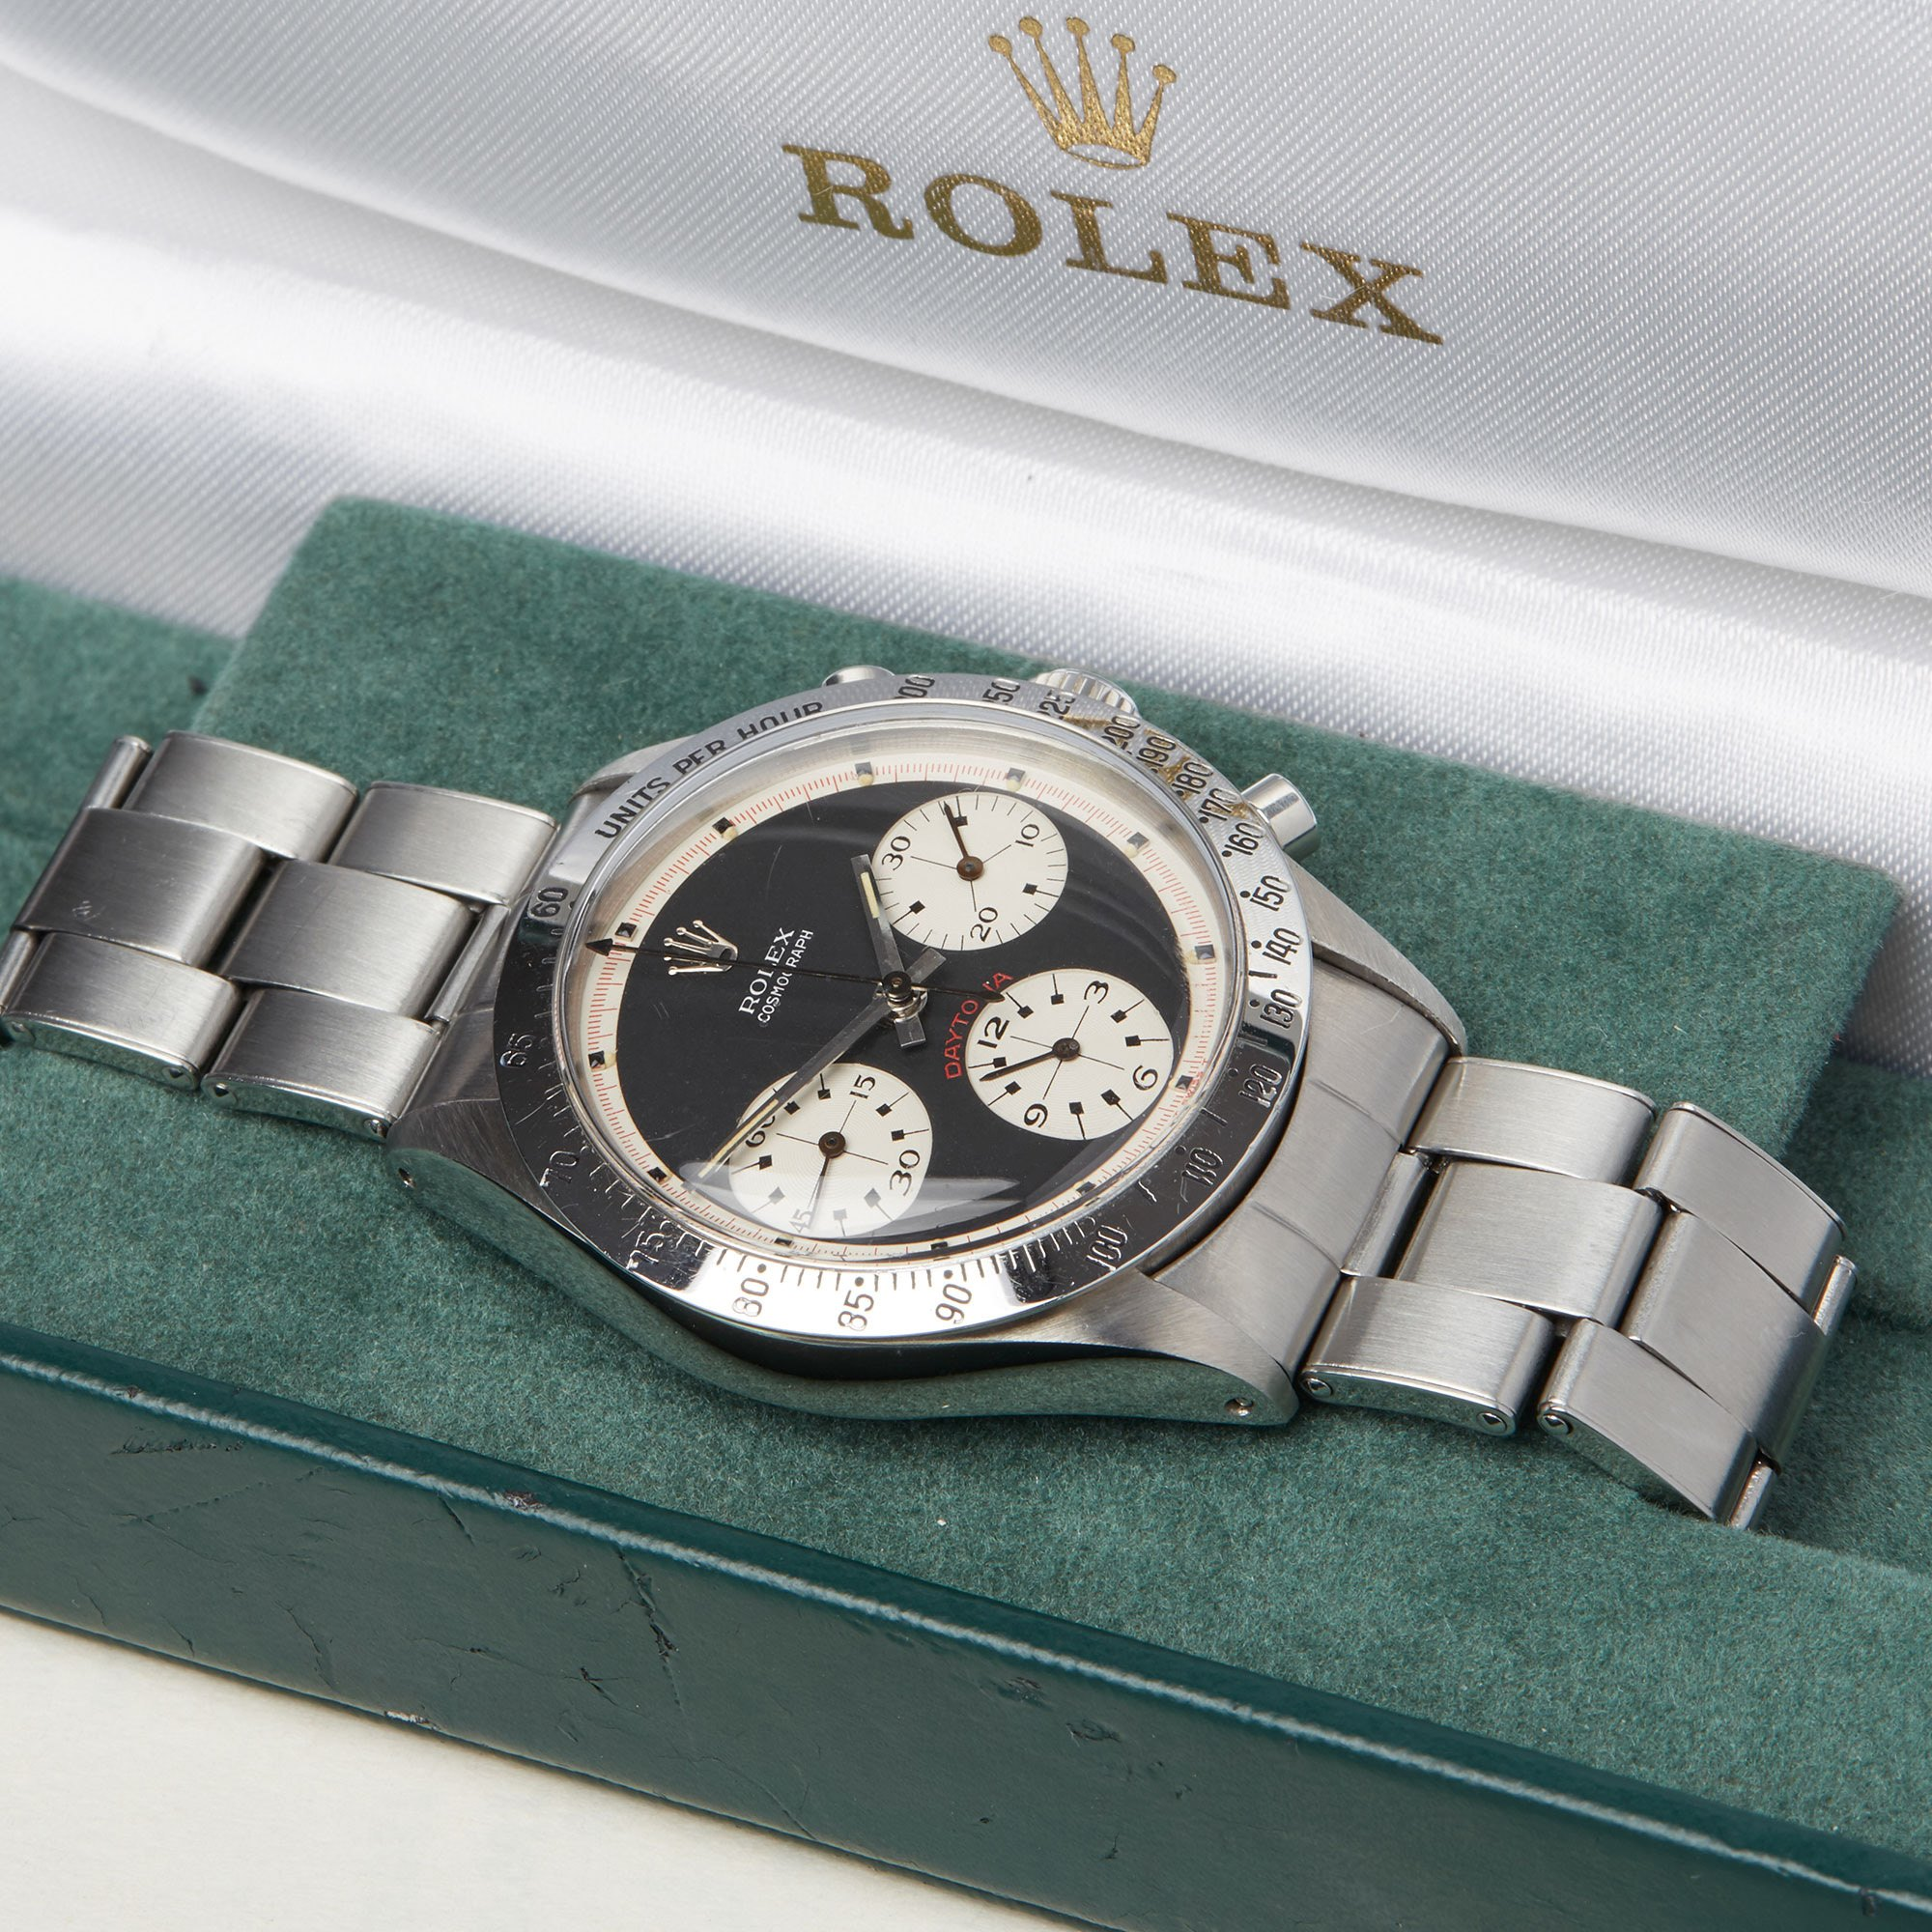 Rolex Daytona Paul Newman Cosmograph Early Mark I Stainless Steel - 6239 Stainless Steel 6239